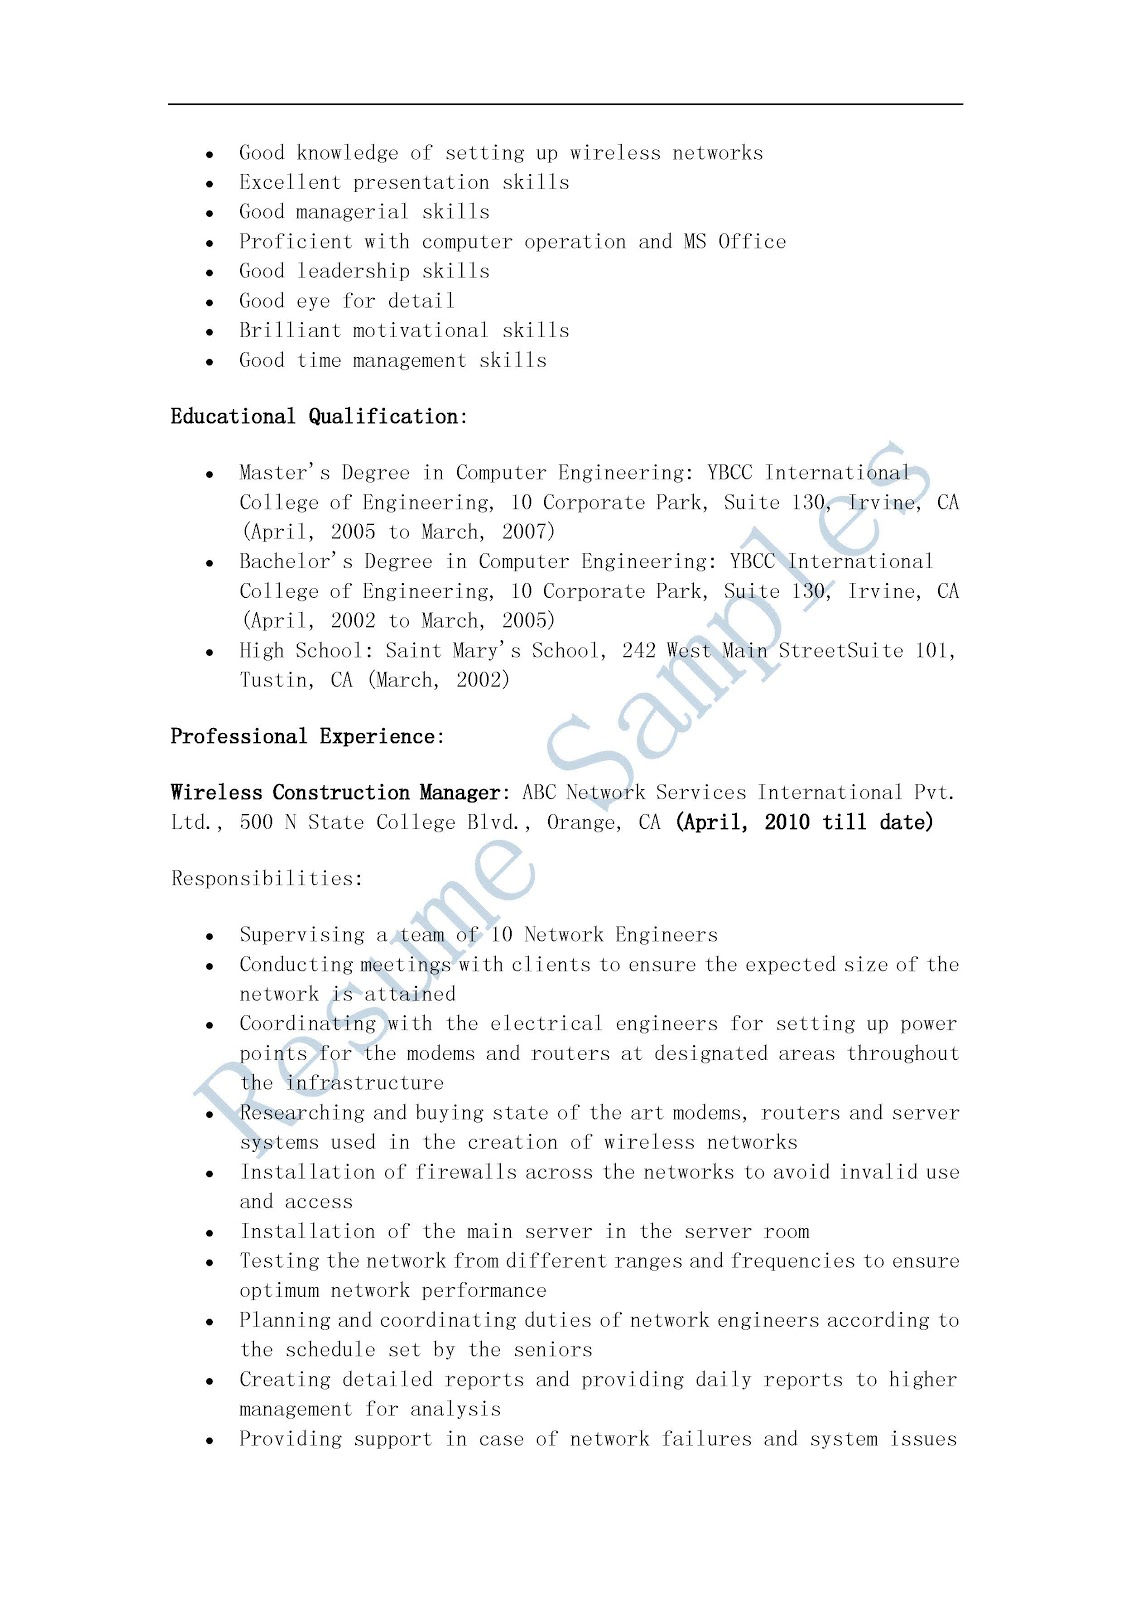 Program Management Resume Examples Resume Examples Construction Resumes  Powerful Resume Examples Construction Concrete Superintendent Template  Worker  Construction Resume Samples